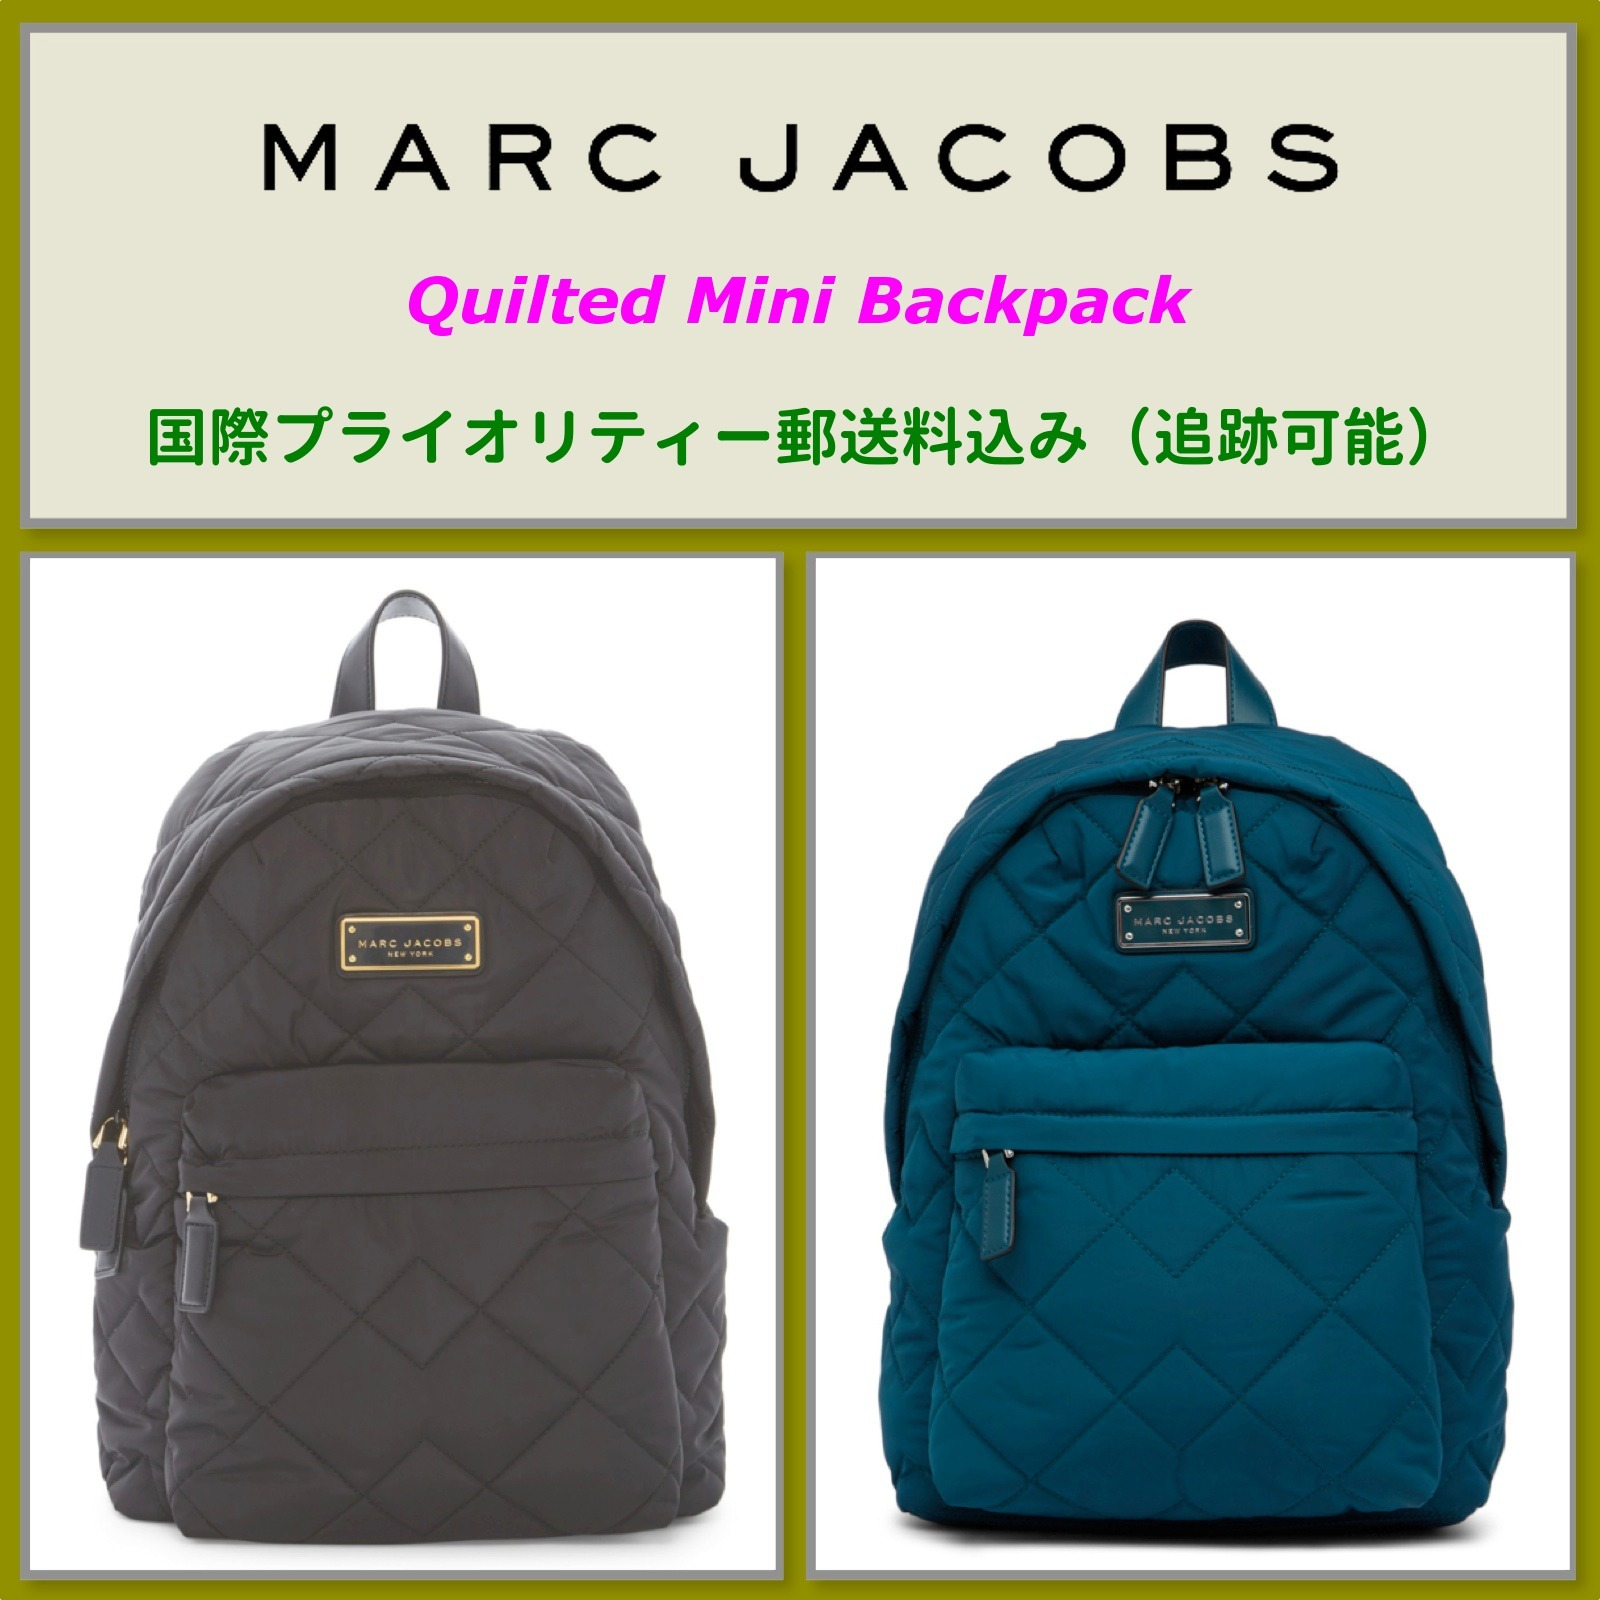 【SALE】MARC JACOBS キルト・バックパック